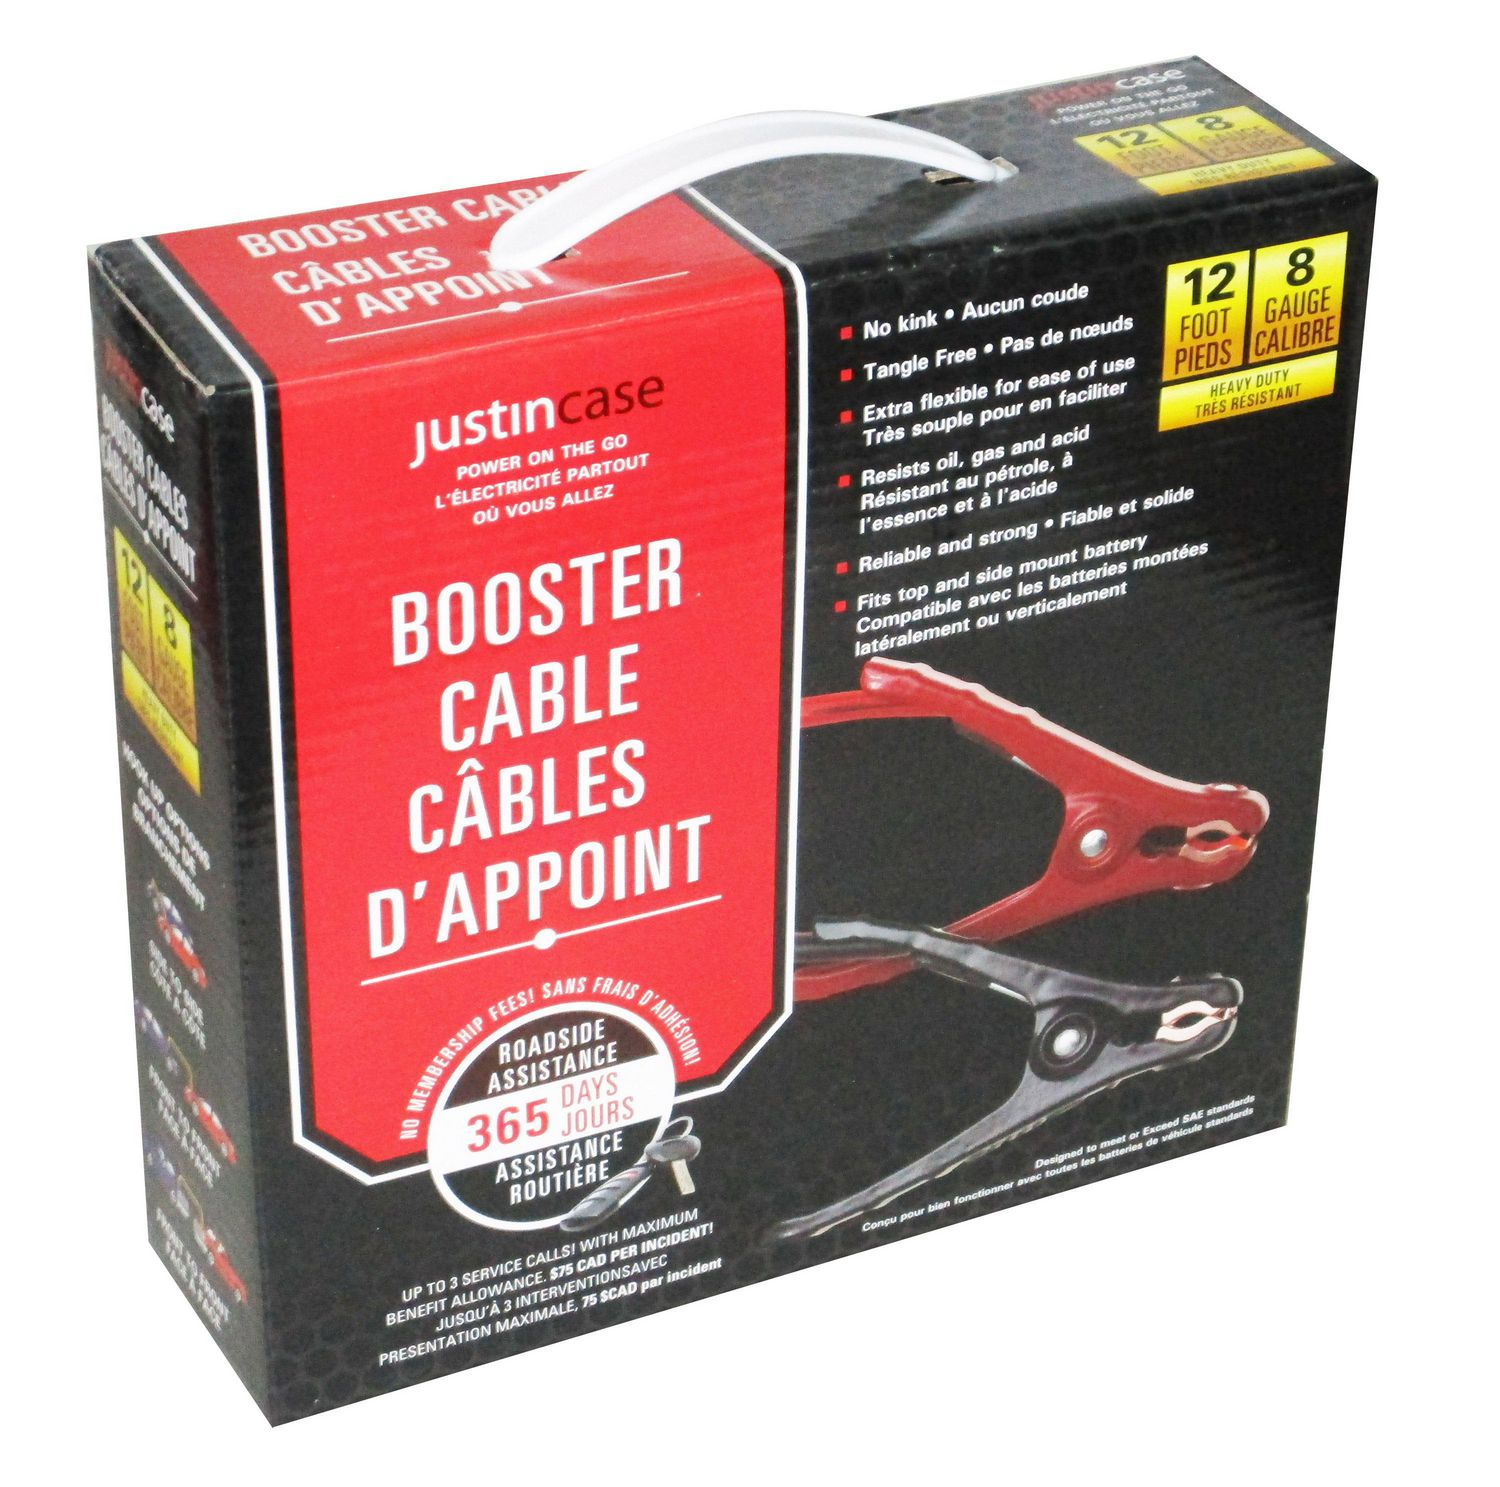 Justin Case 8 Gauge 12 Feet Jumper Cables with 365 days of Roadside Assistance Heavy Duty Car Emergency Booster Cables SAE